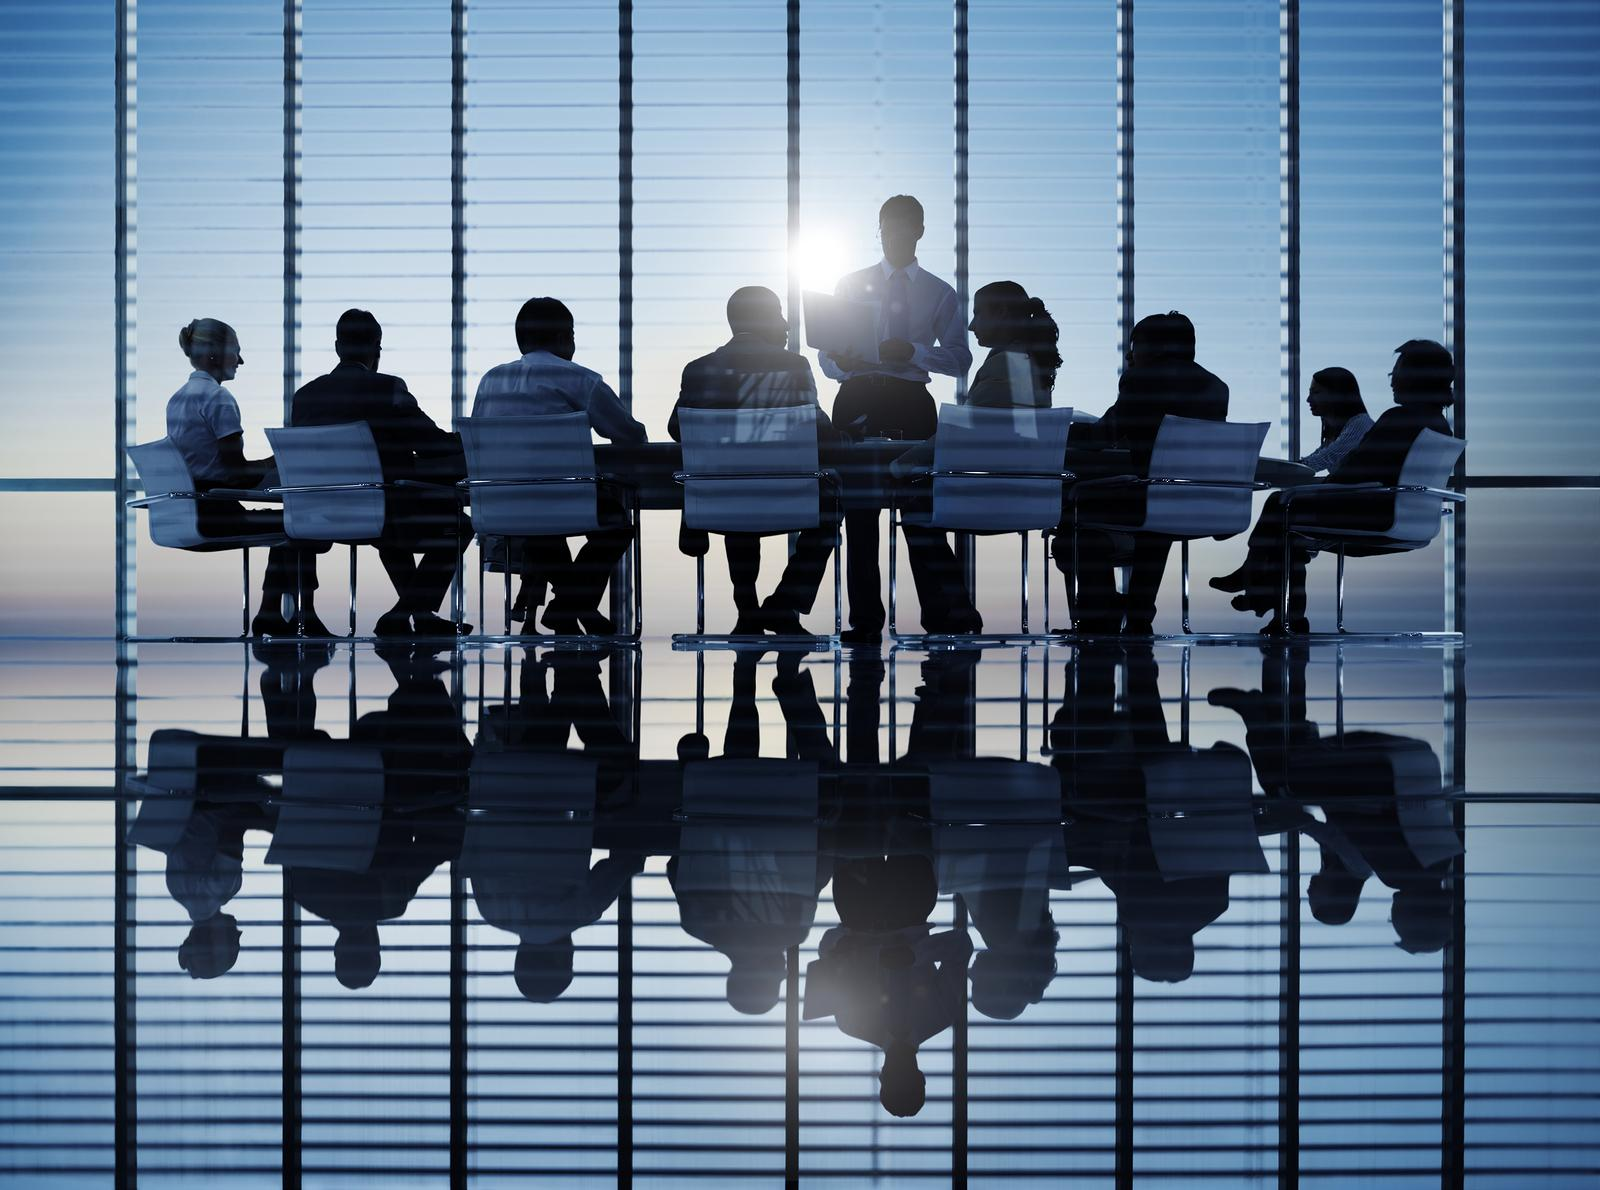 Stock photo of people in a meeting